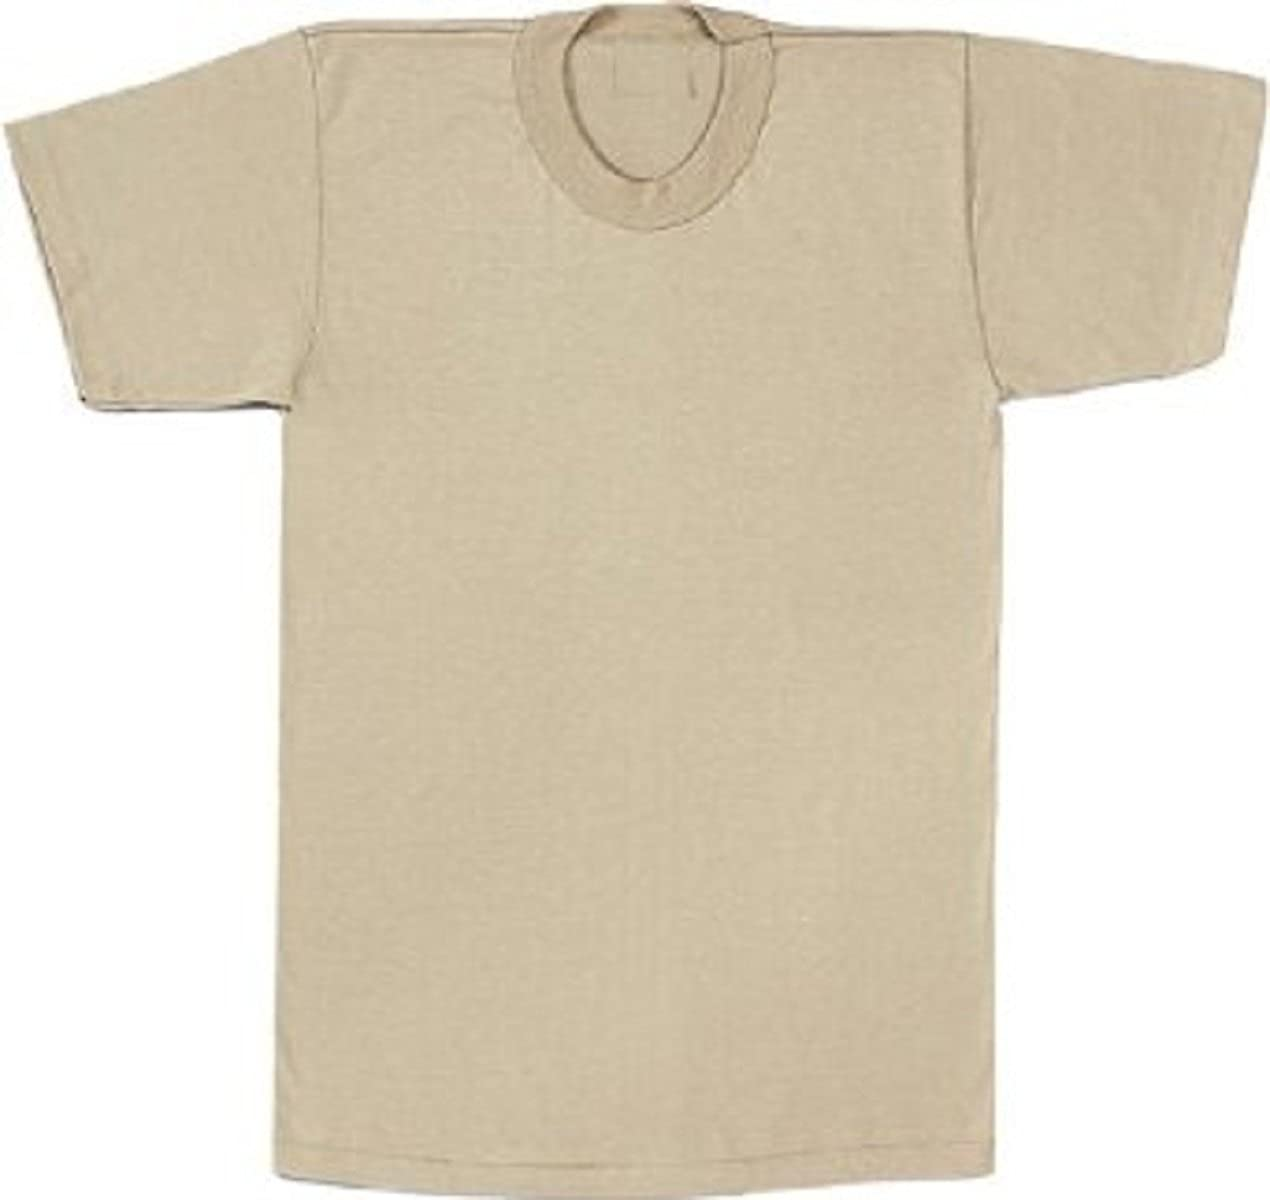 Desert Sand Tan Short Sleeve Solid Military T-Shirt Actual Issue Pkg 3 Shirts